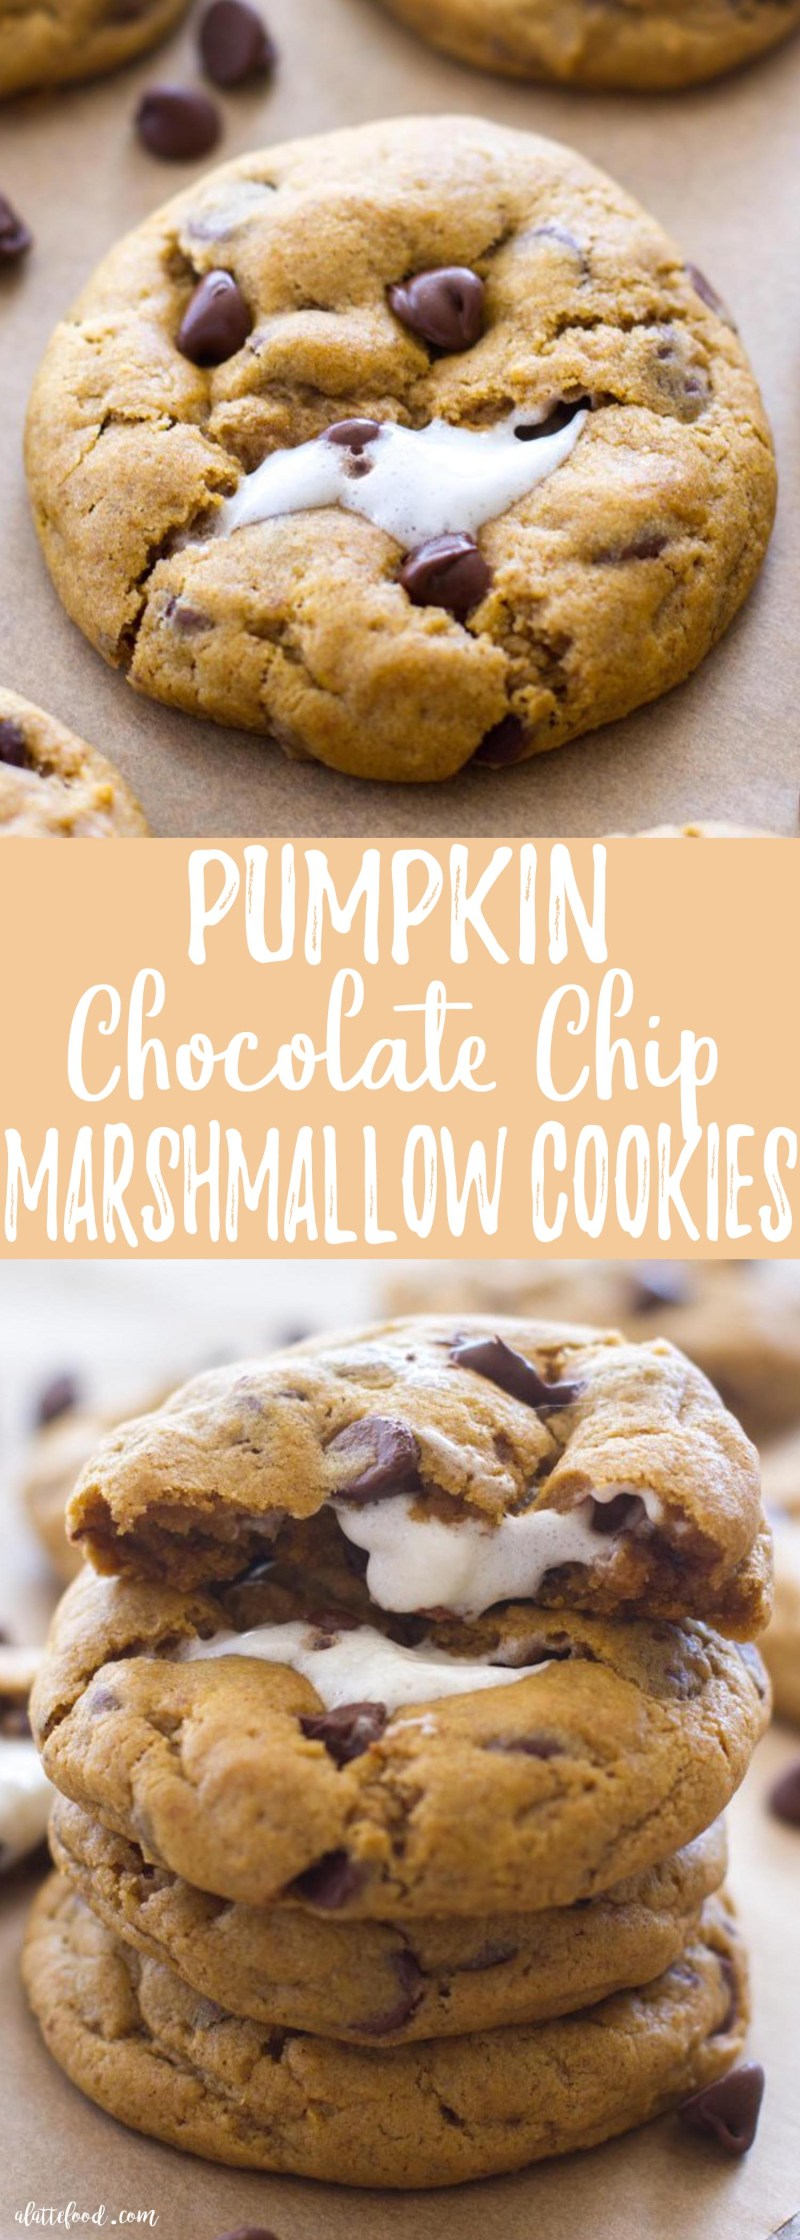 These thick andchewy Pumpkin Chocolate Chip Cookies are baked with a gooey marshmallow inside, making these rich, chocolatey pumpkin cookies theperfect fall dessert! Plus, a step-by-step video below!